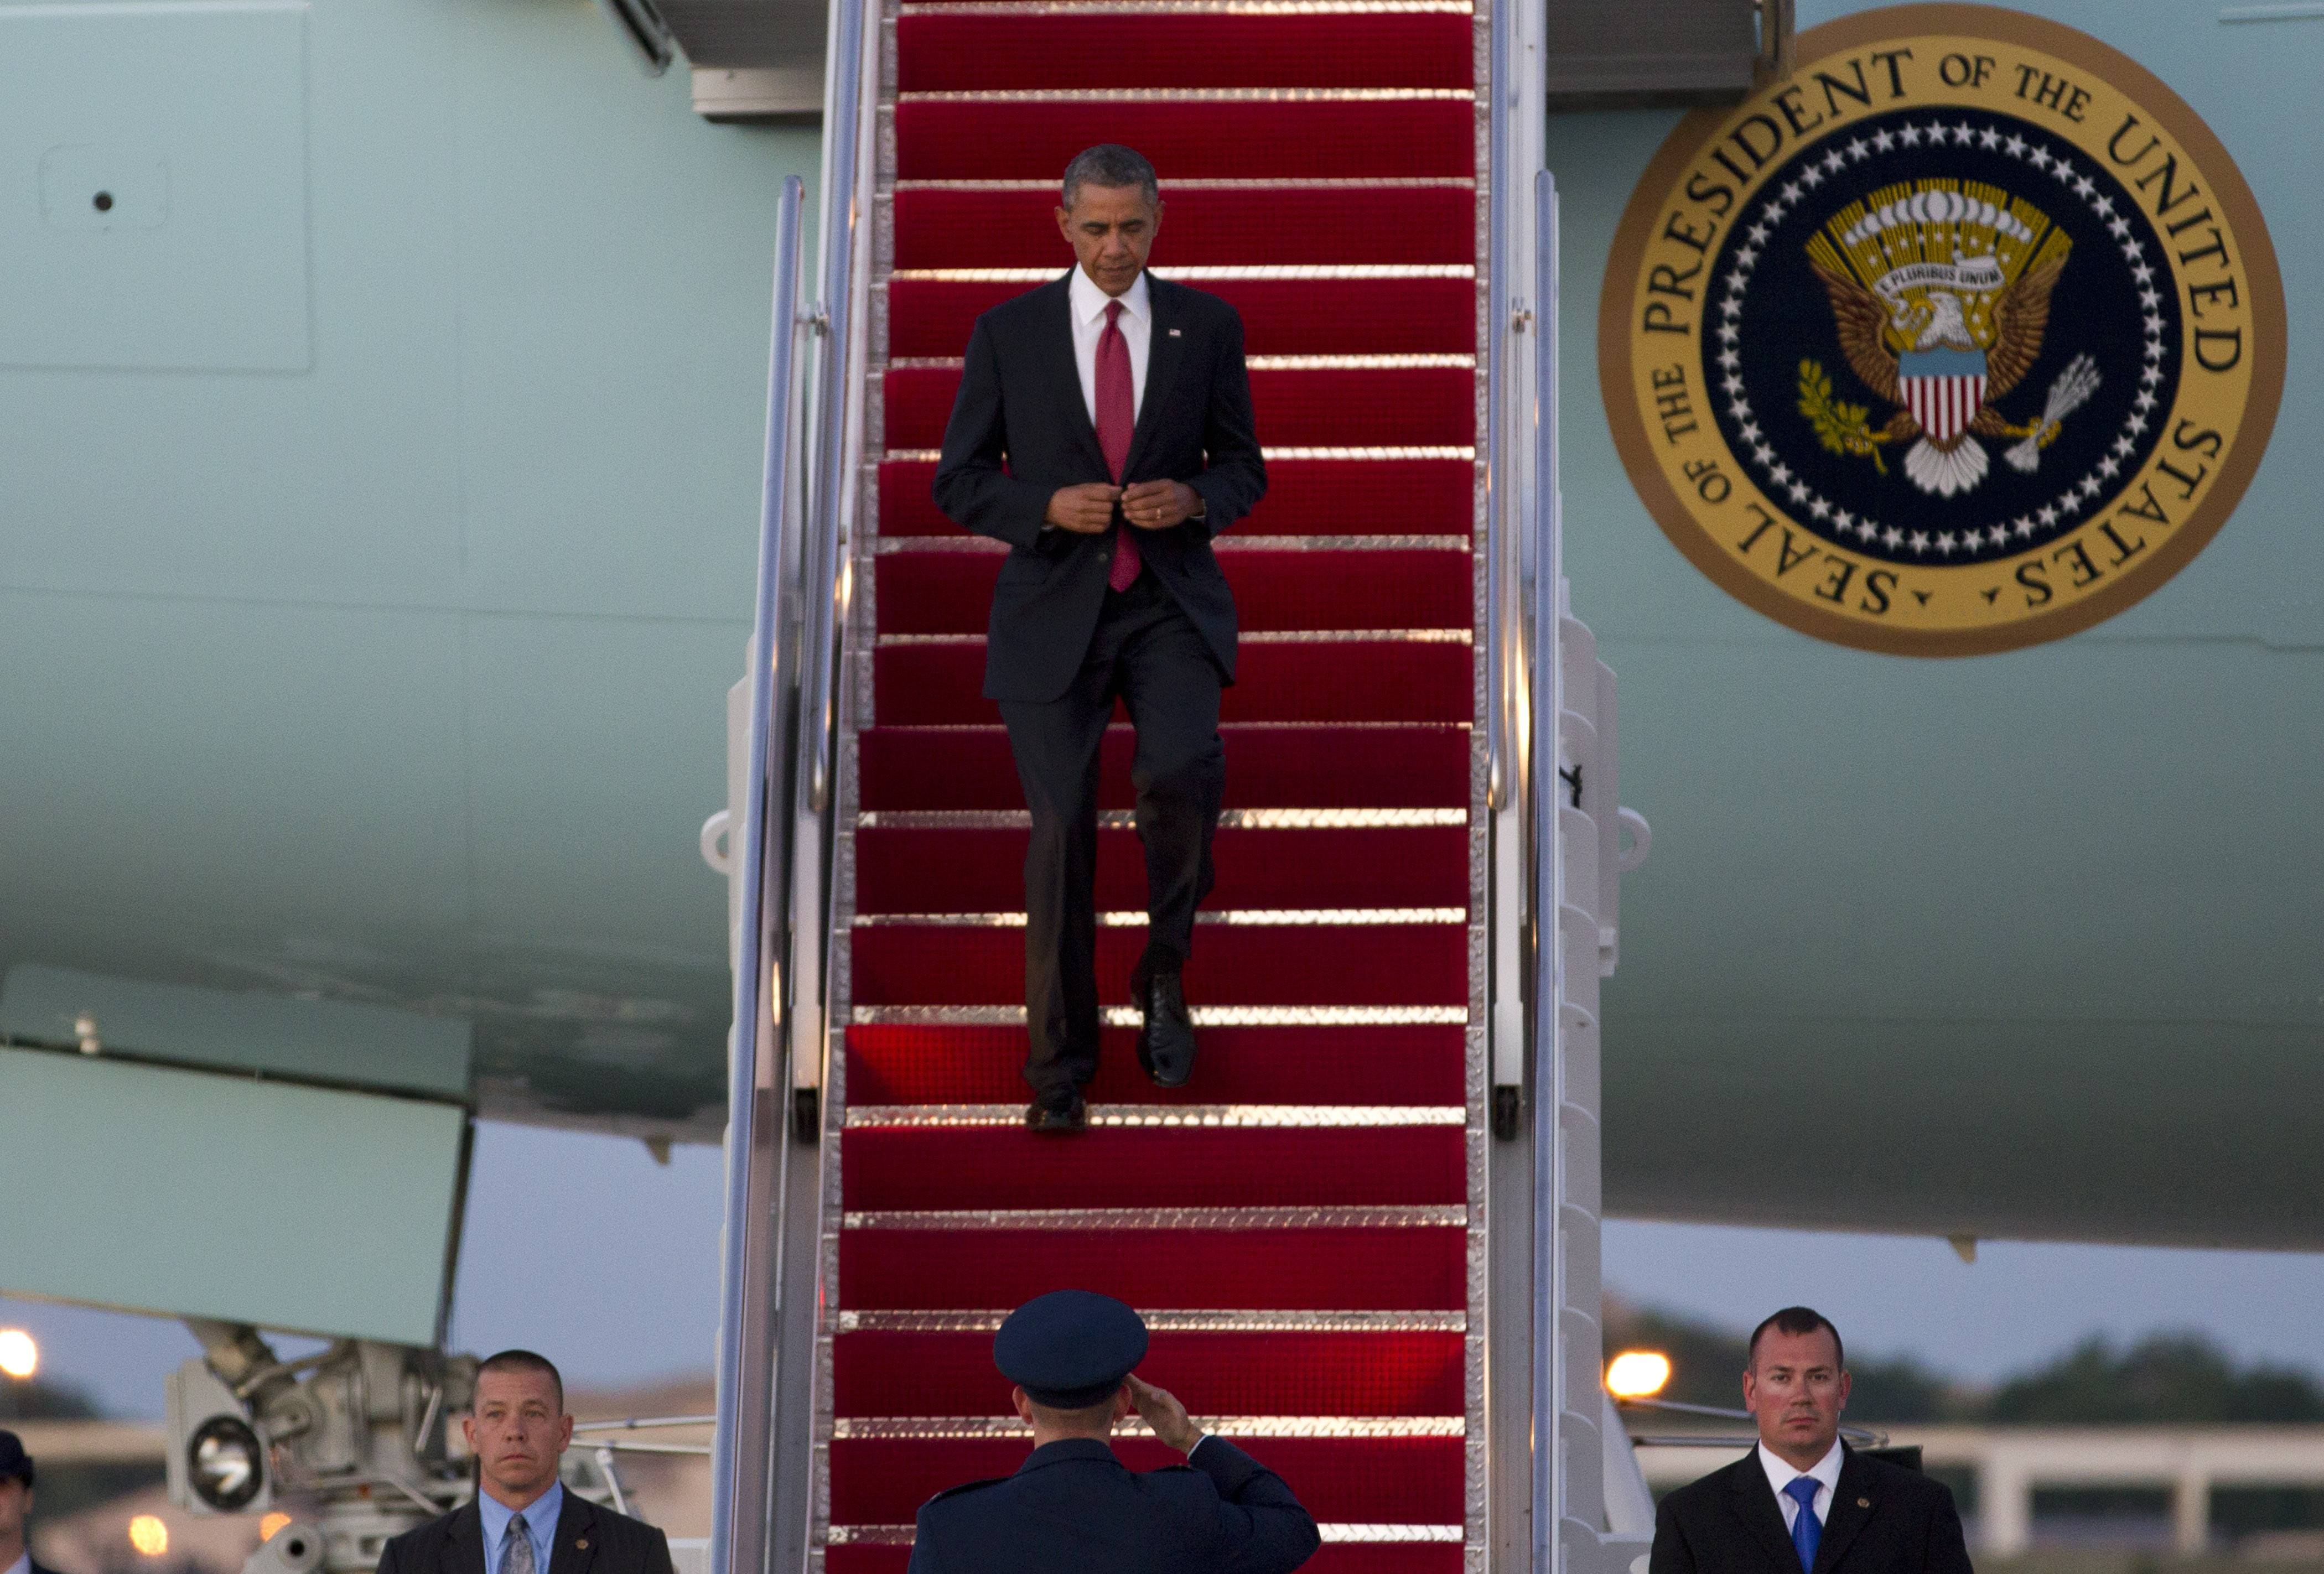 President Barack Obama walks down the stairs from Air Force One, upon arrival Friday at Andrews Air Force Base, Md.